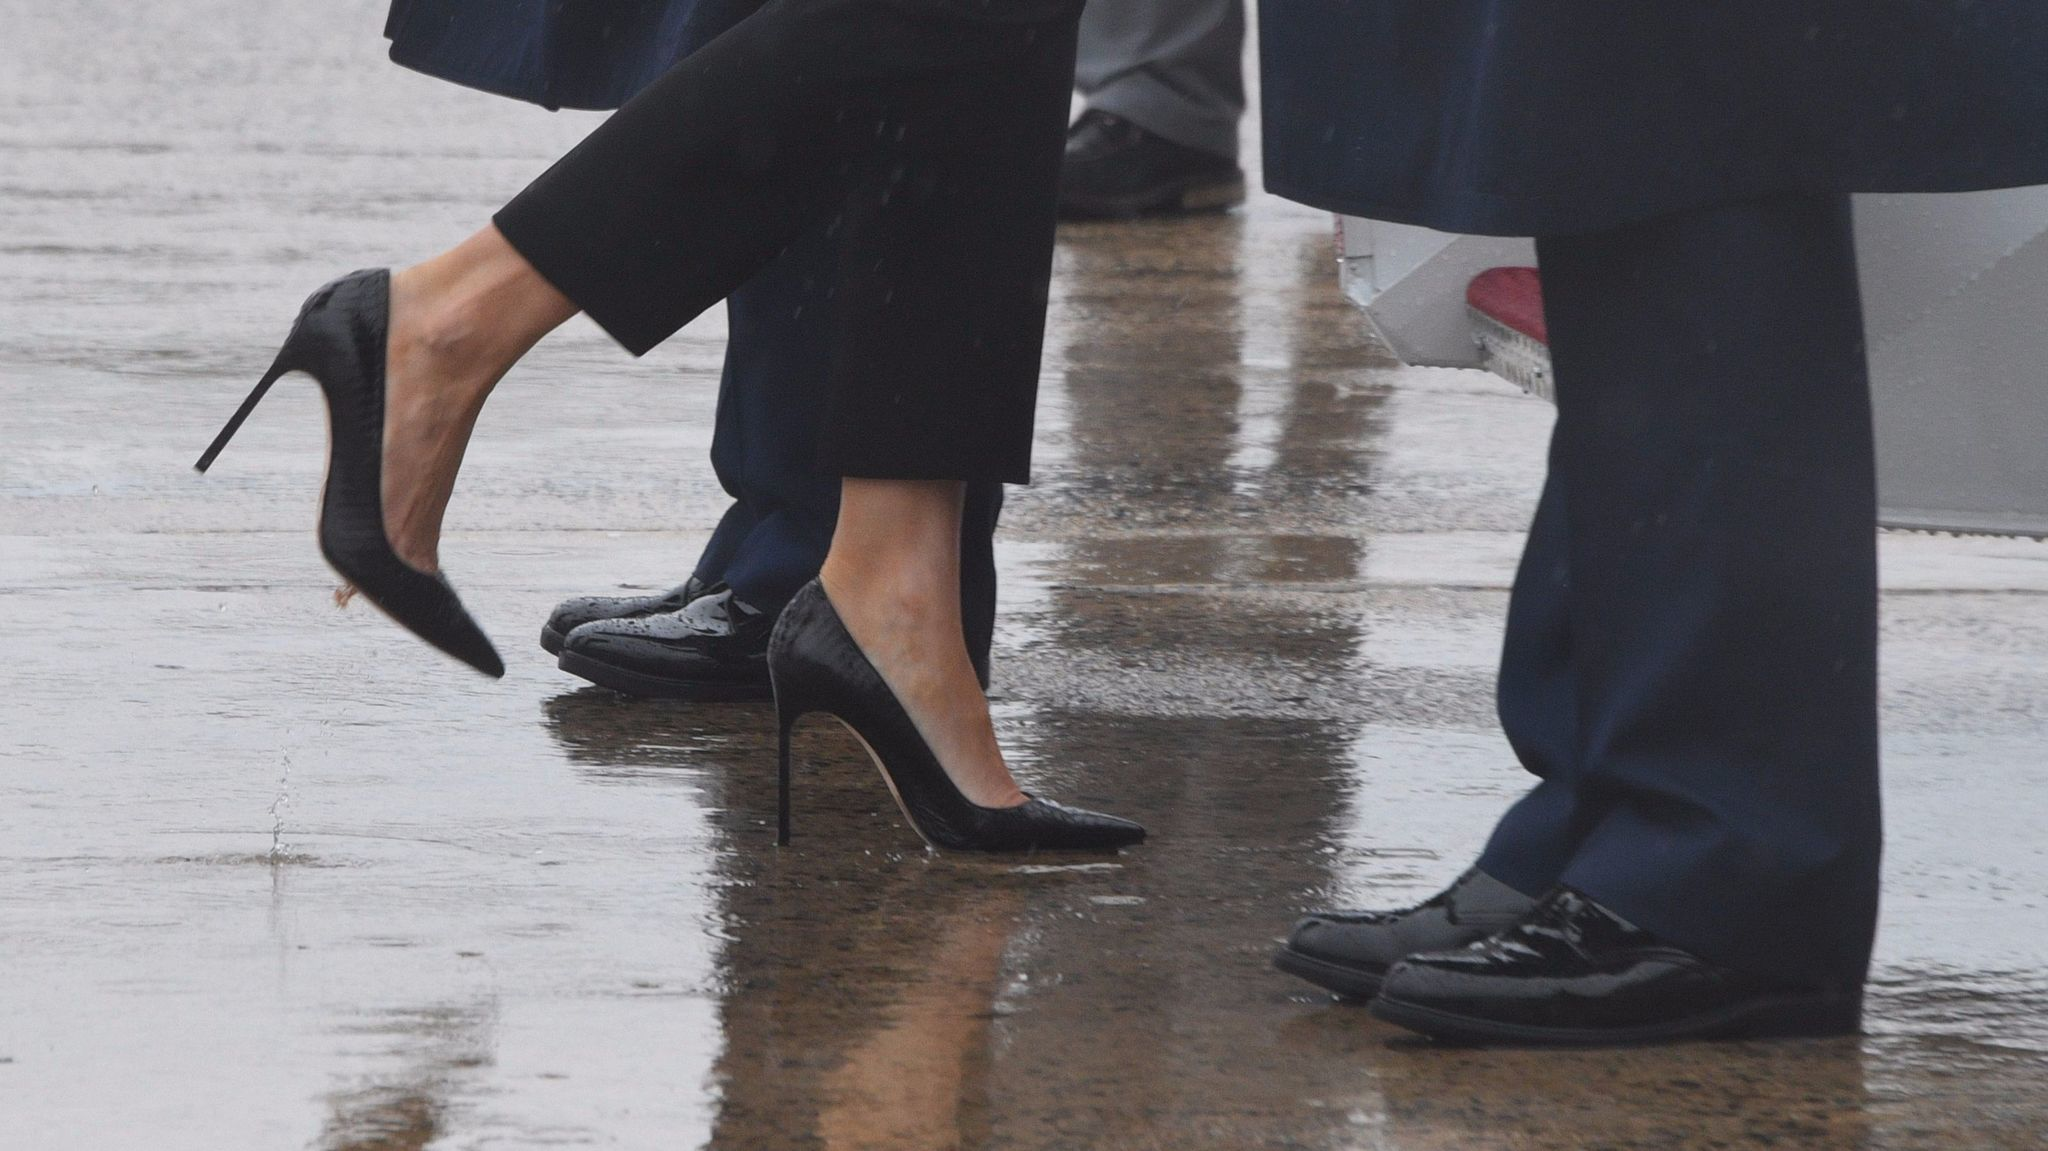 First Lady Melania Trump boards Air Force One in heels to visit Hurricane Harvey victims. (AFP/Getty Images)